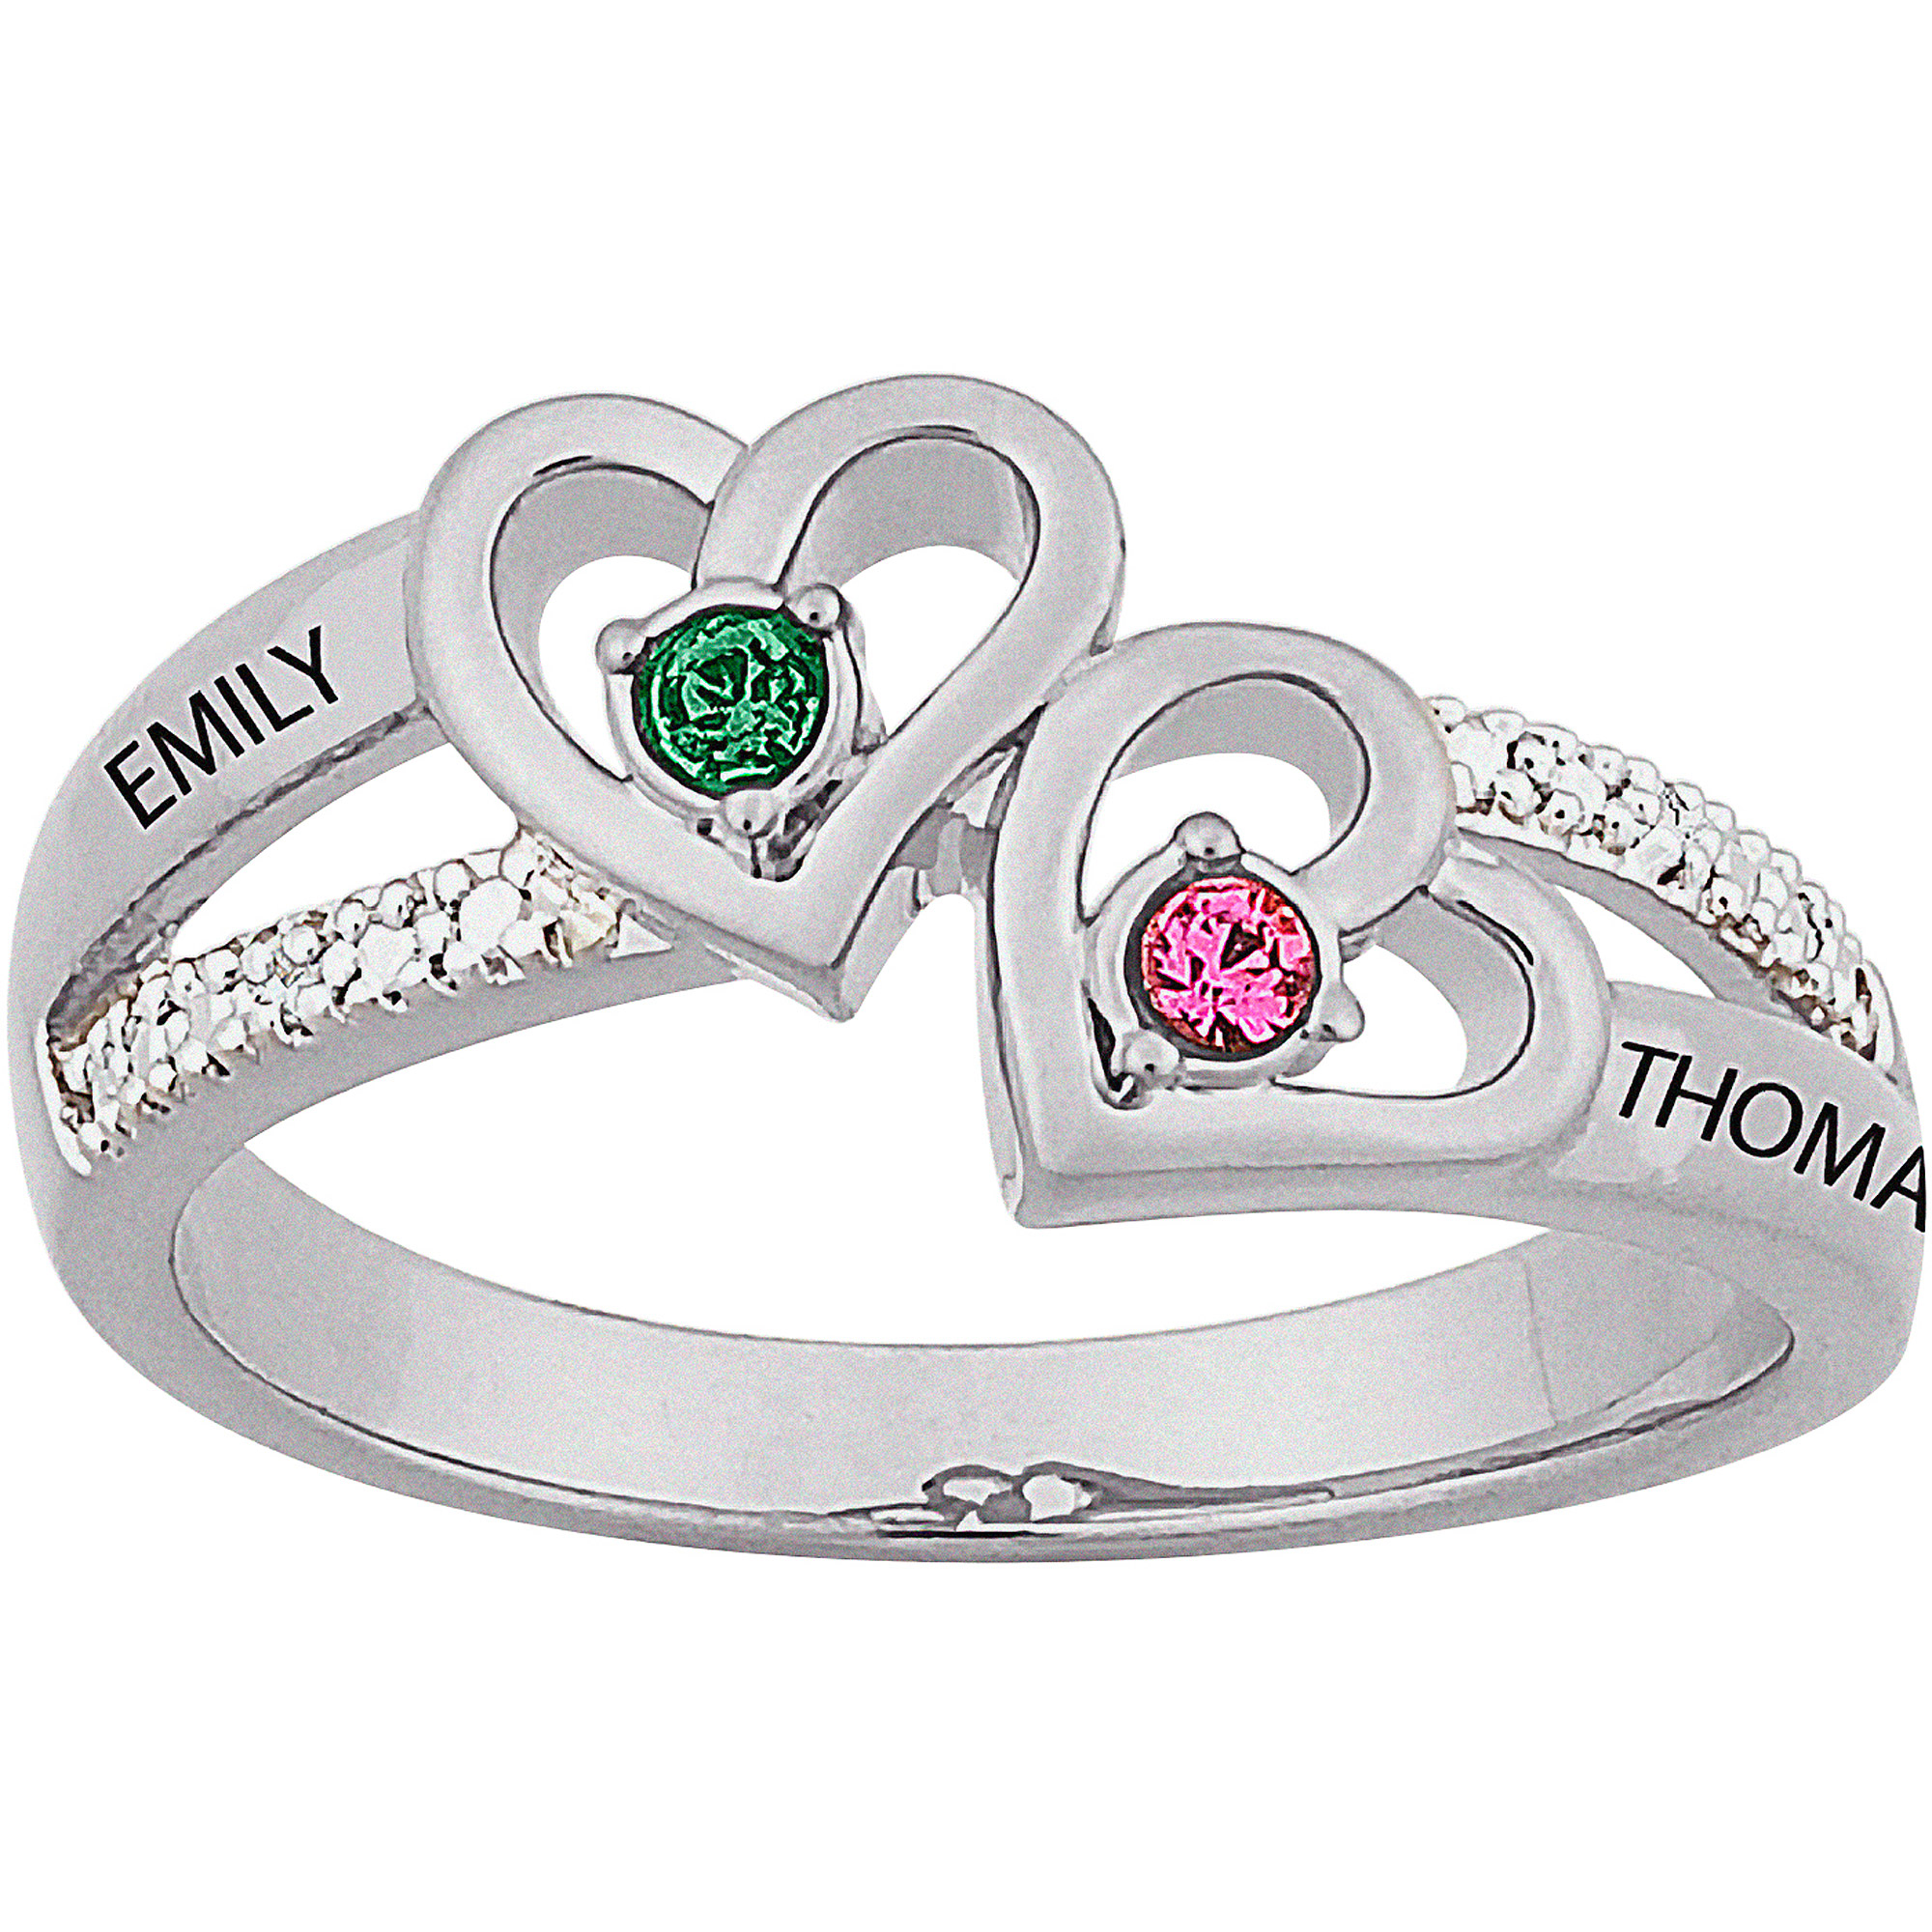 Personalized Sterling Silver Couples Heart Birthstone & Name Diamond Accent Ring